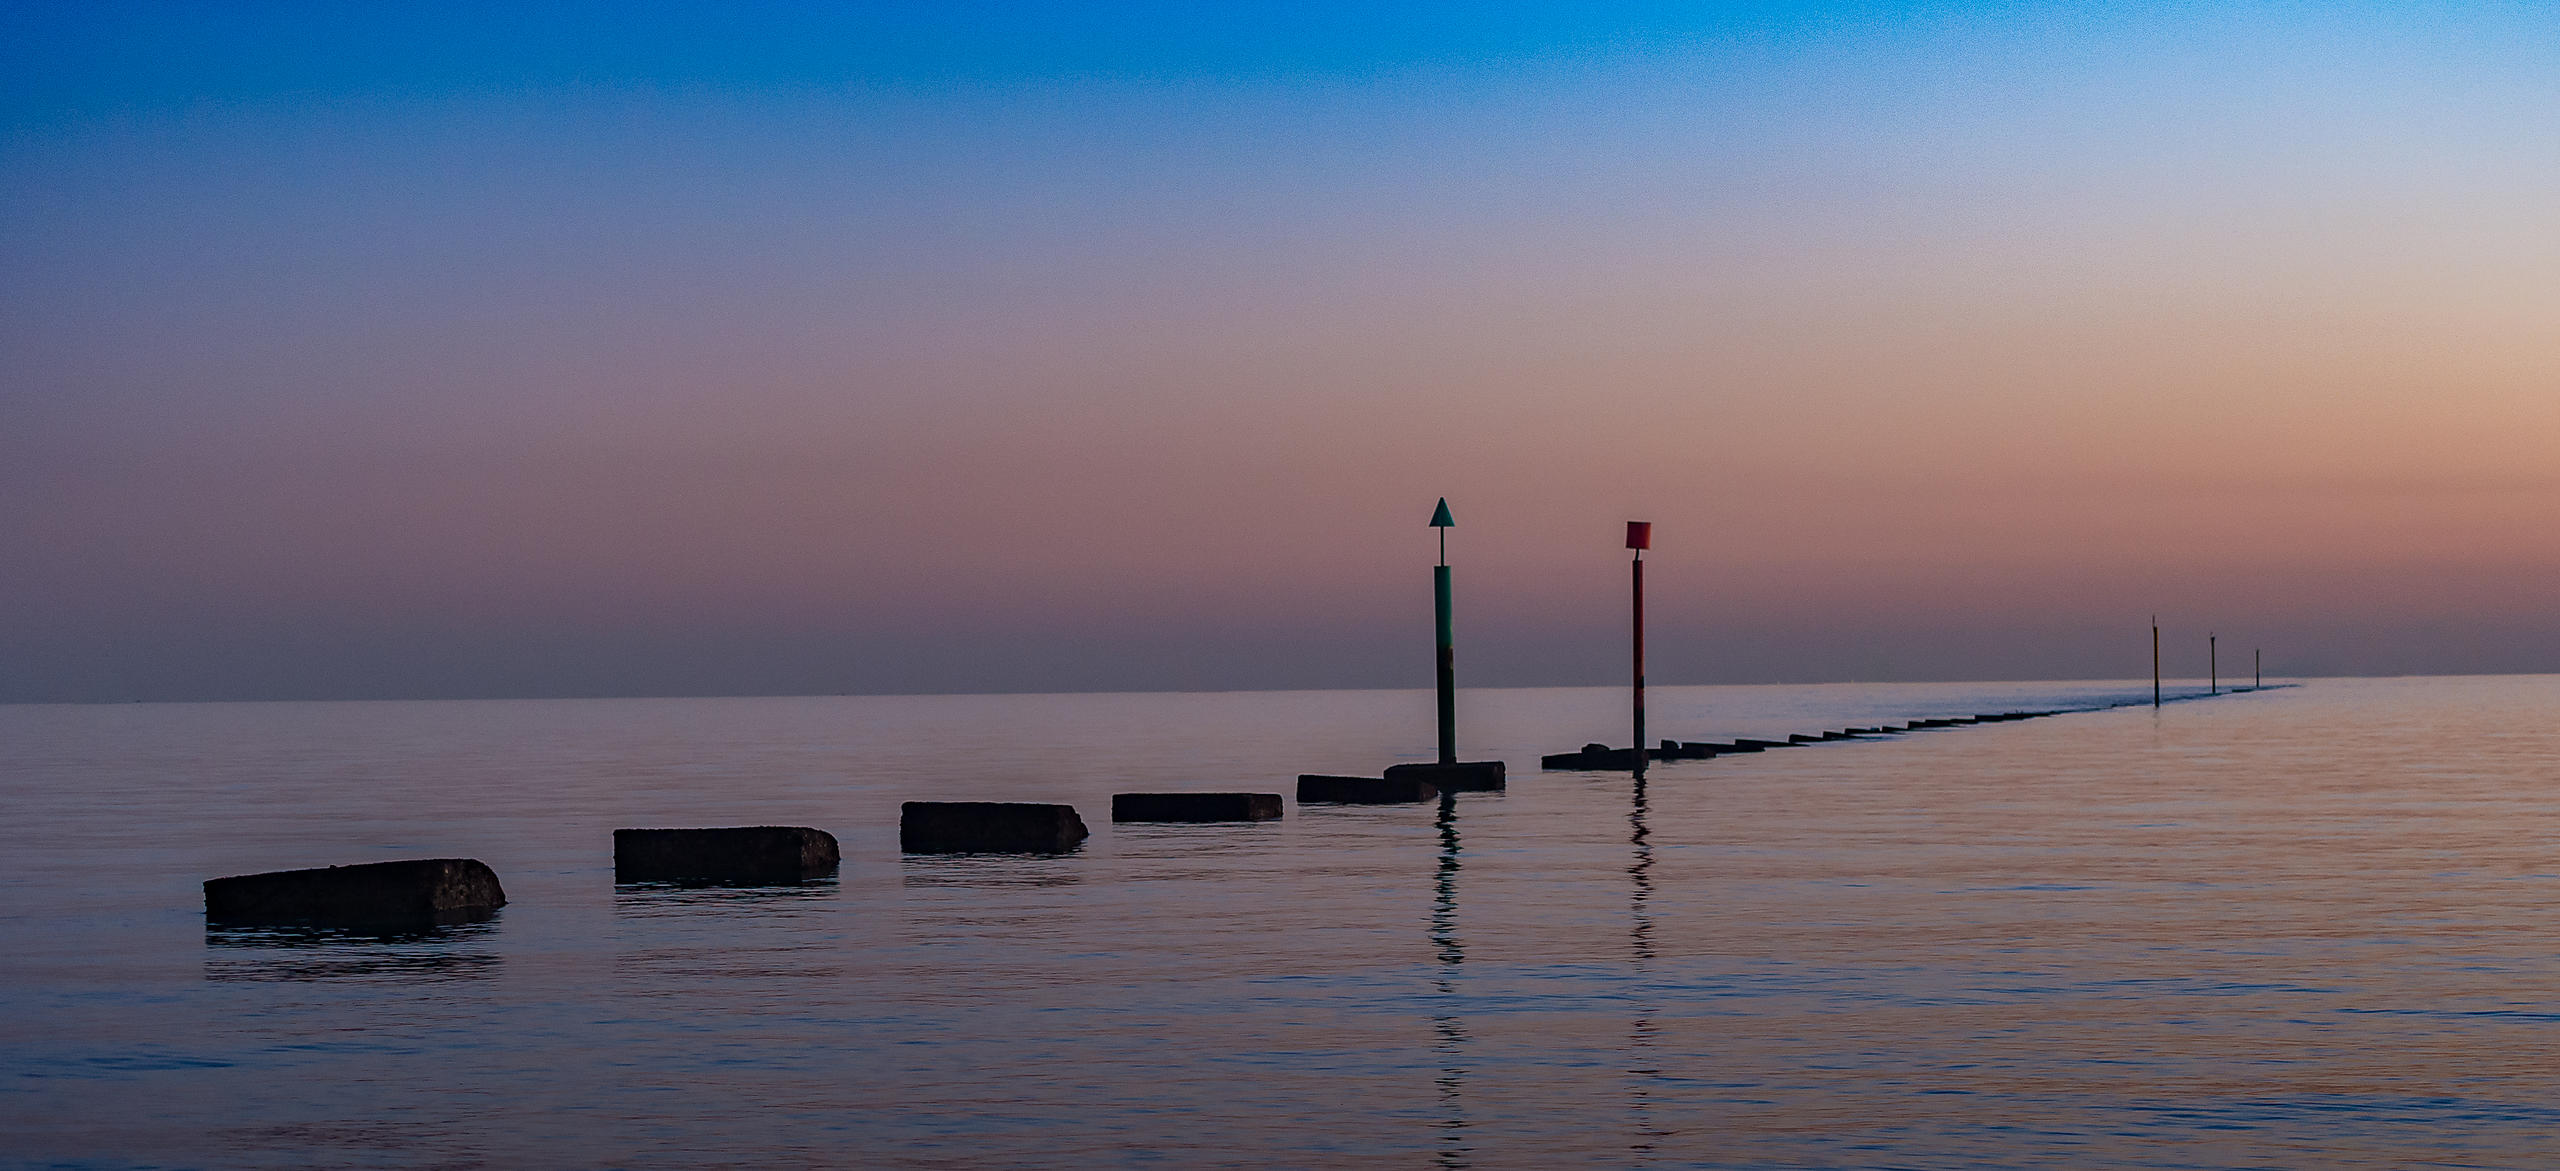 Sea Defences on the Solent at Dusk with Pink Sky and Calm Water